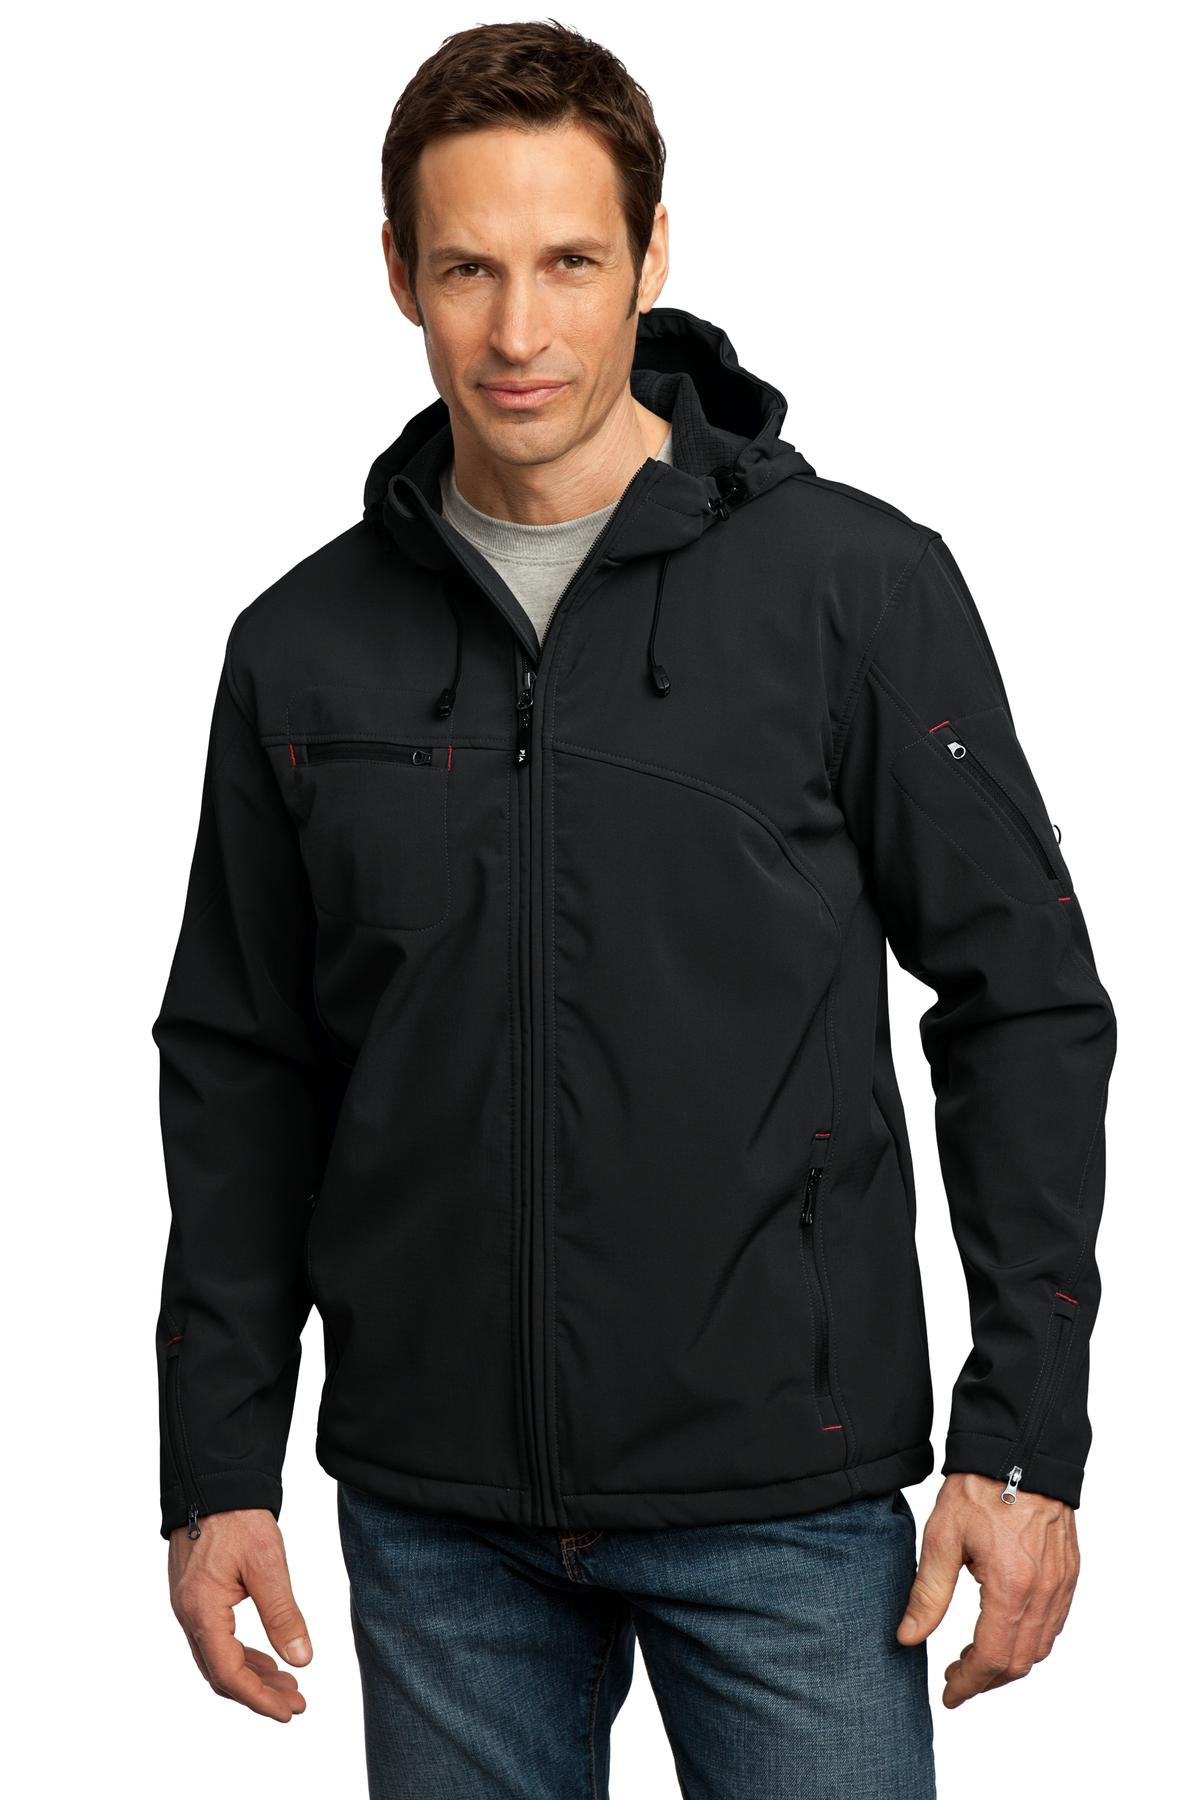 Port Authority ®  Textured Hooded Soft Shell Jacket. J706 - Black/ Engine Red